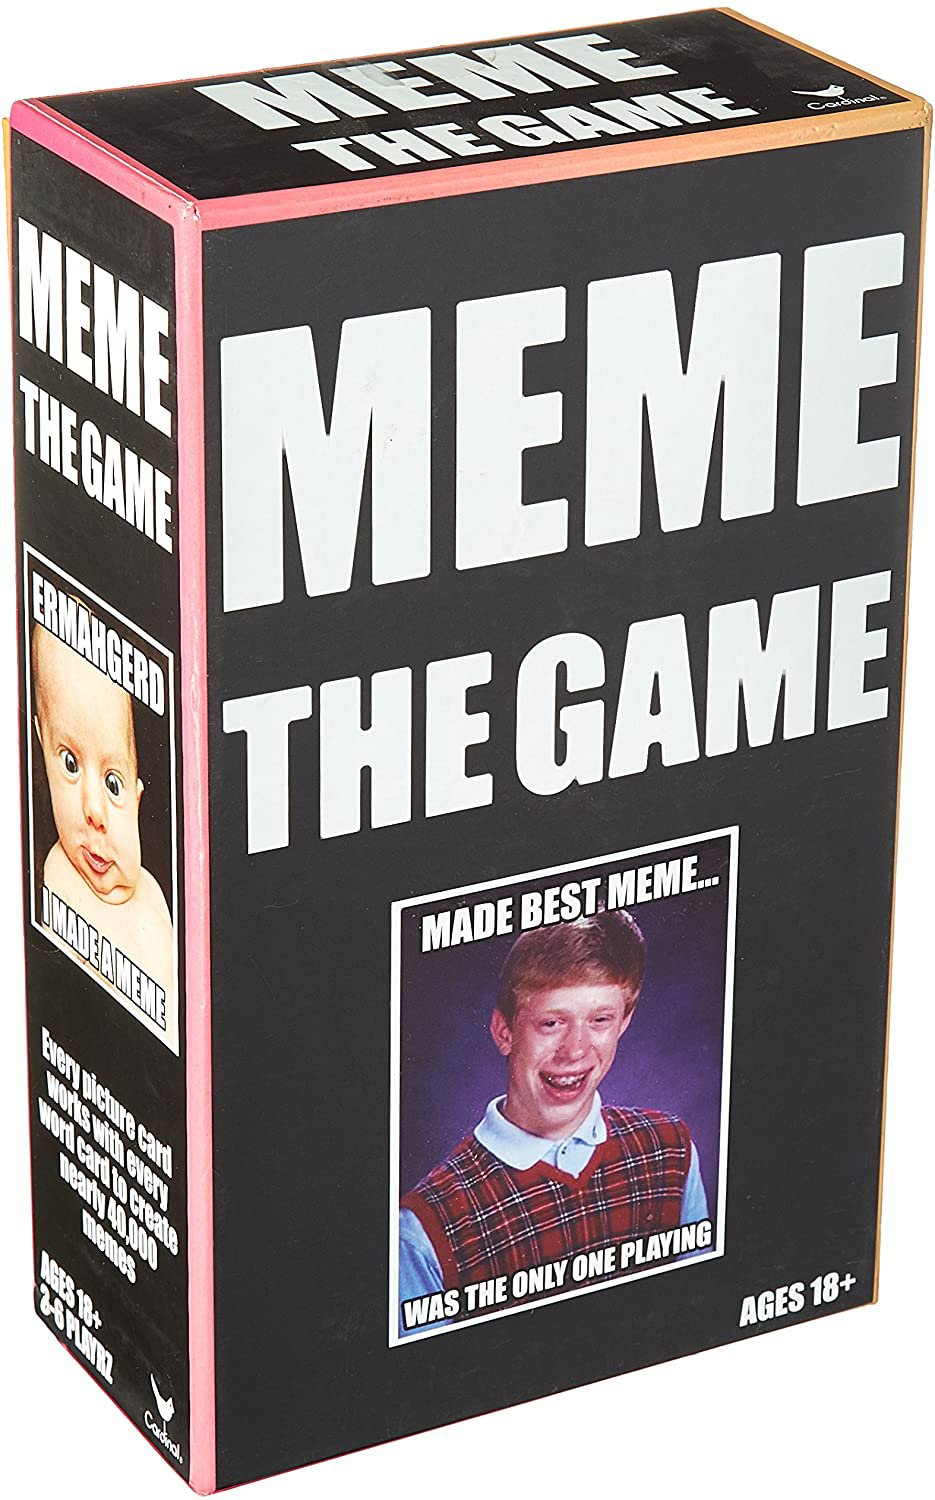 Meme The Game - Adult Humor Game - For ages 18 - 100 years!